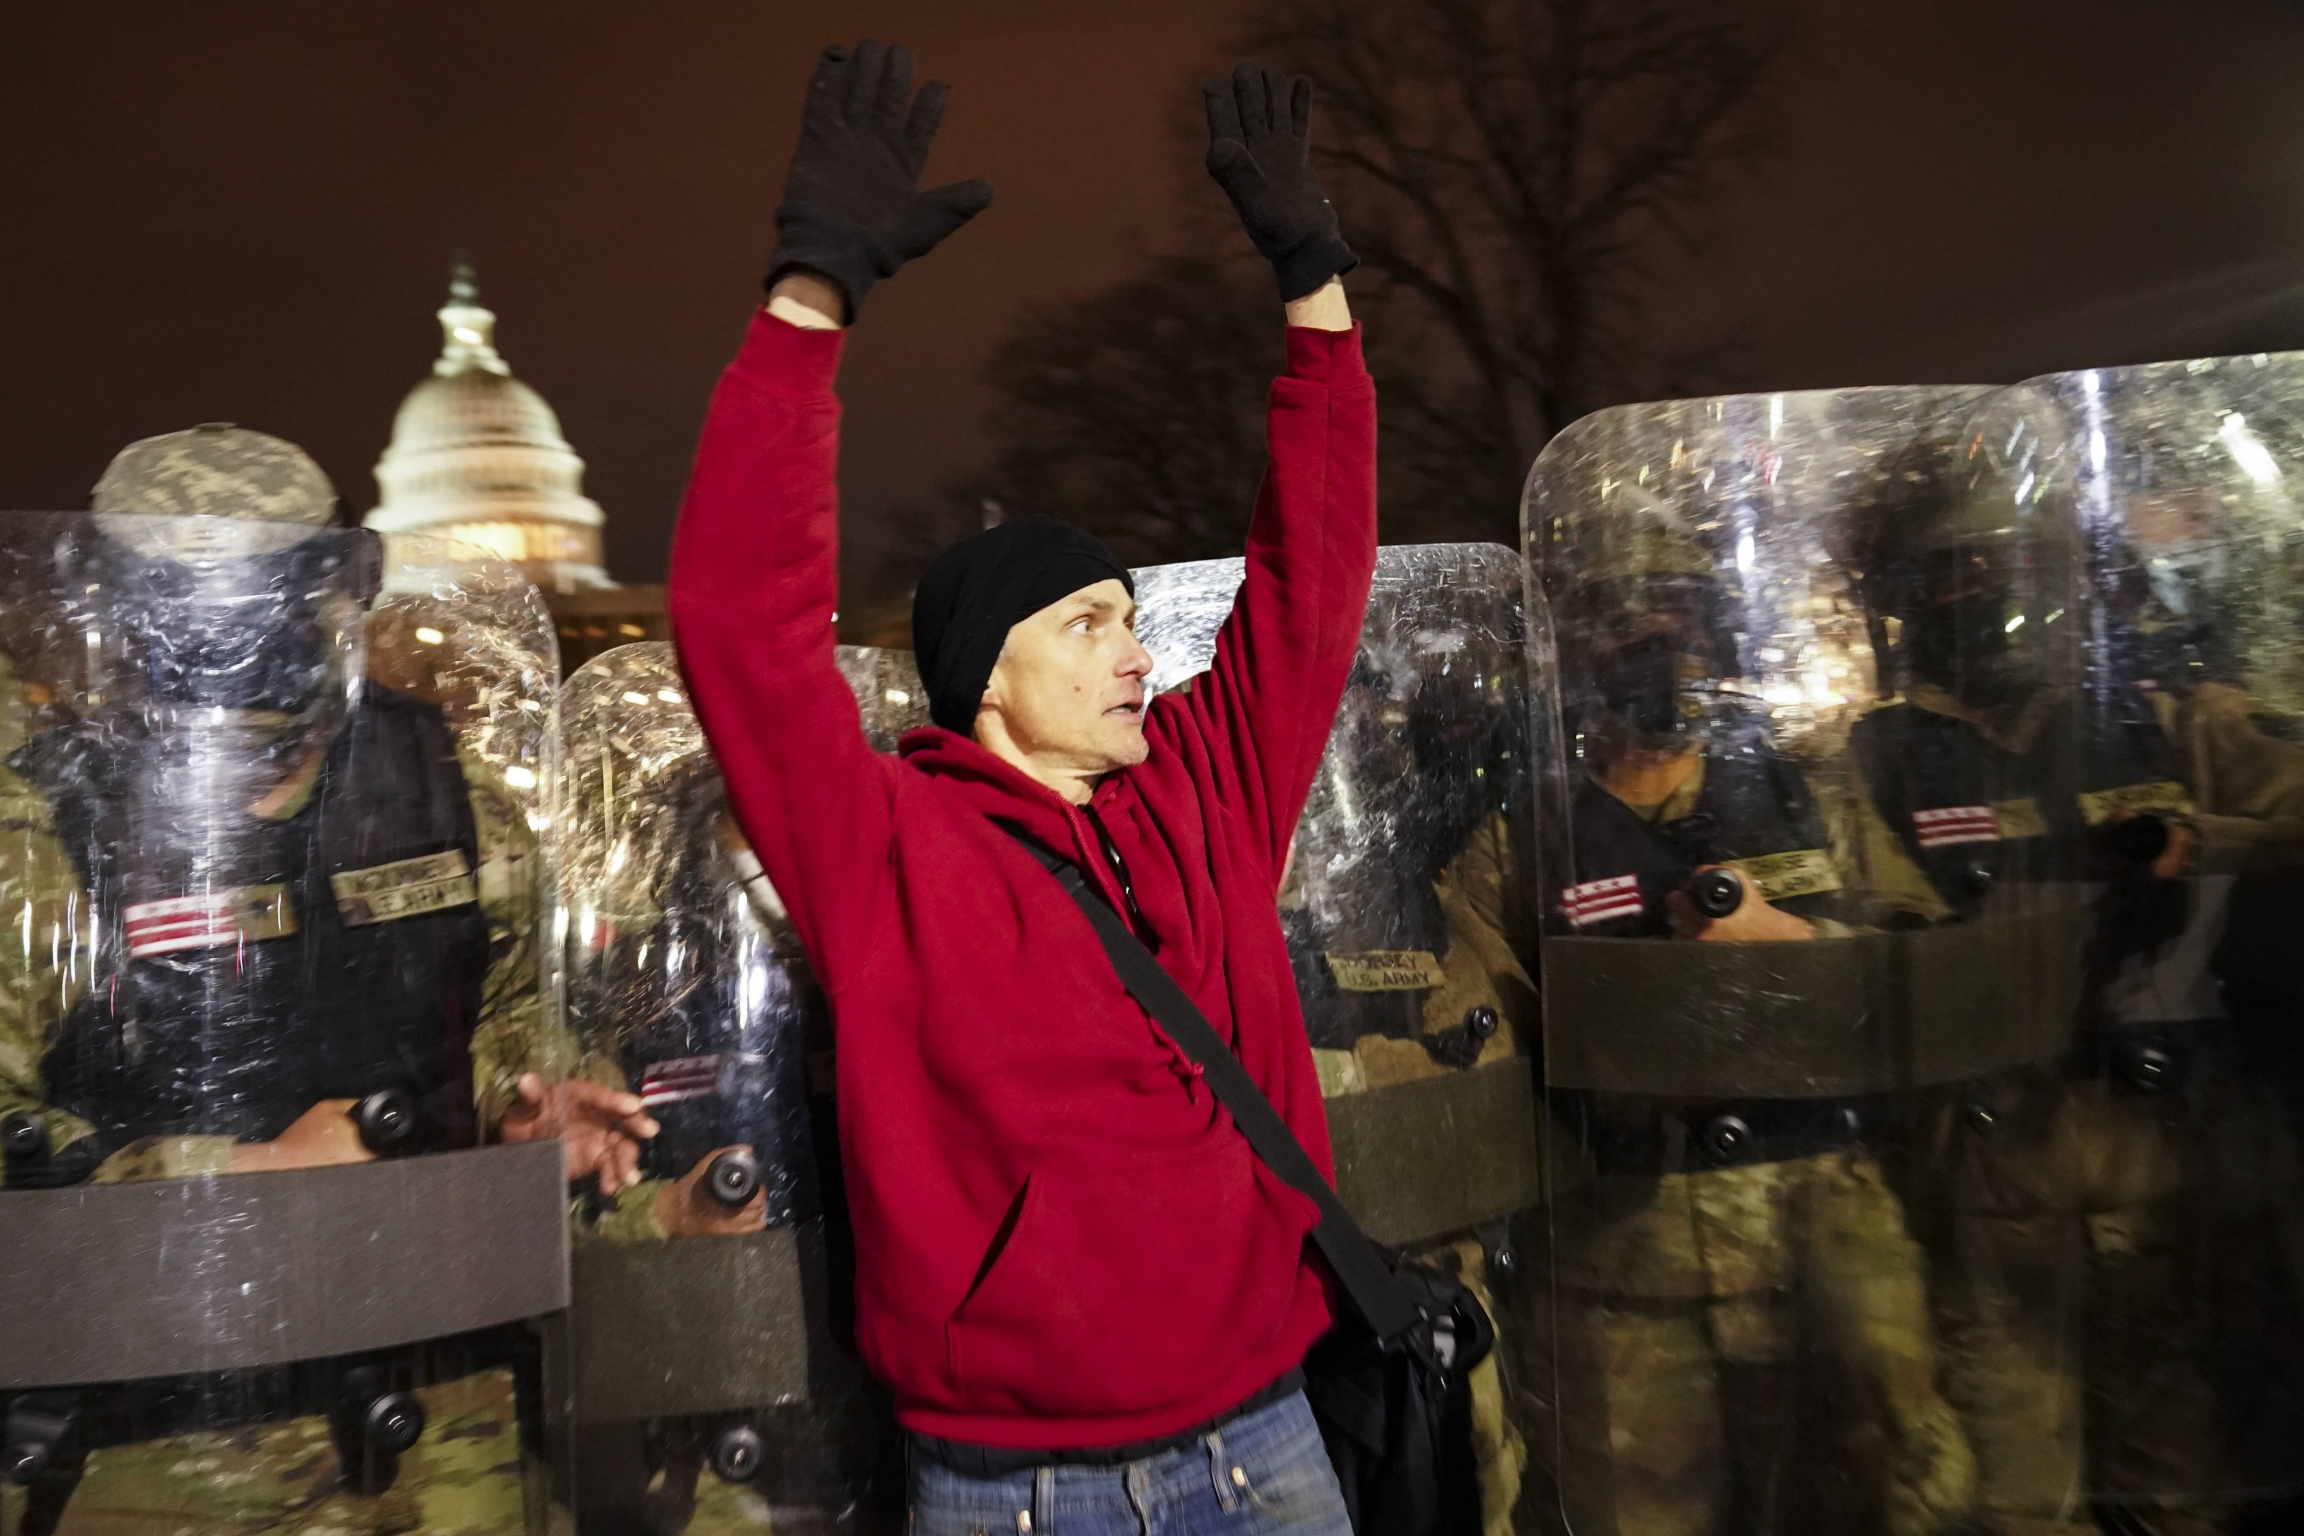 National guard appear behind a man wearing a red sweater, who has his hands up.